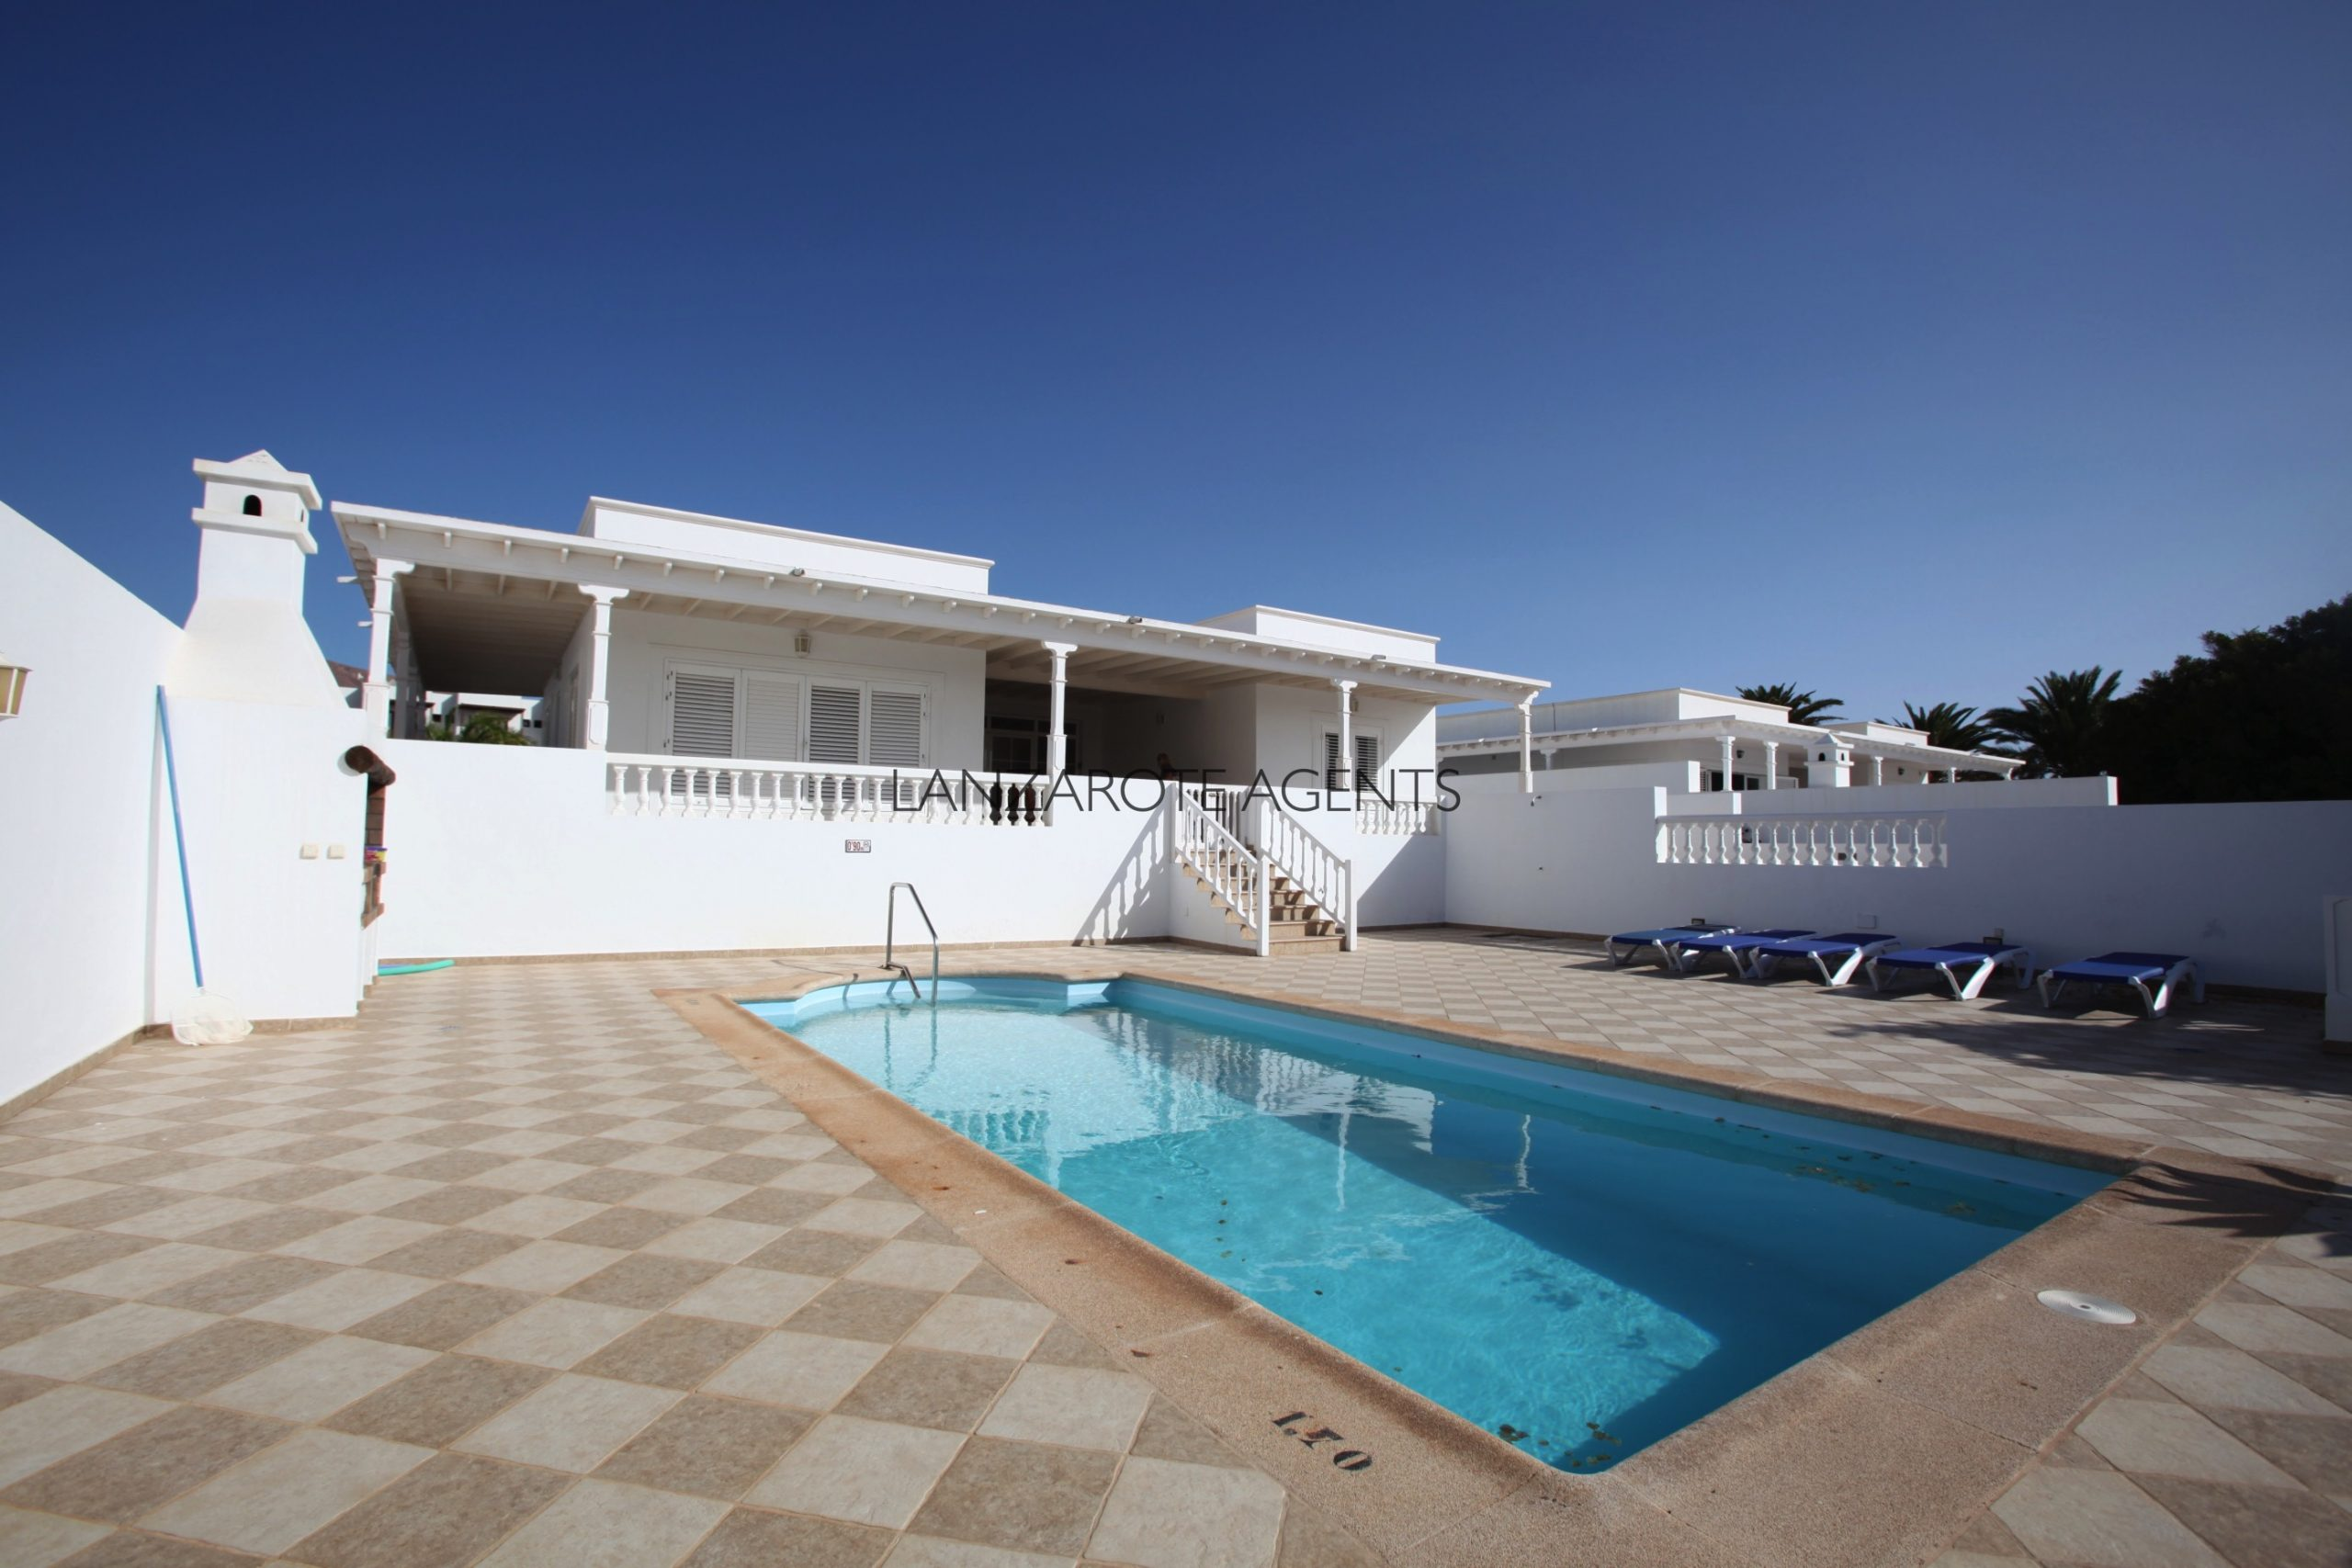 Wonderfull Spacious Luxury Detached Villa In Puerto Calero with Private Pool